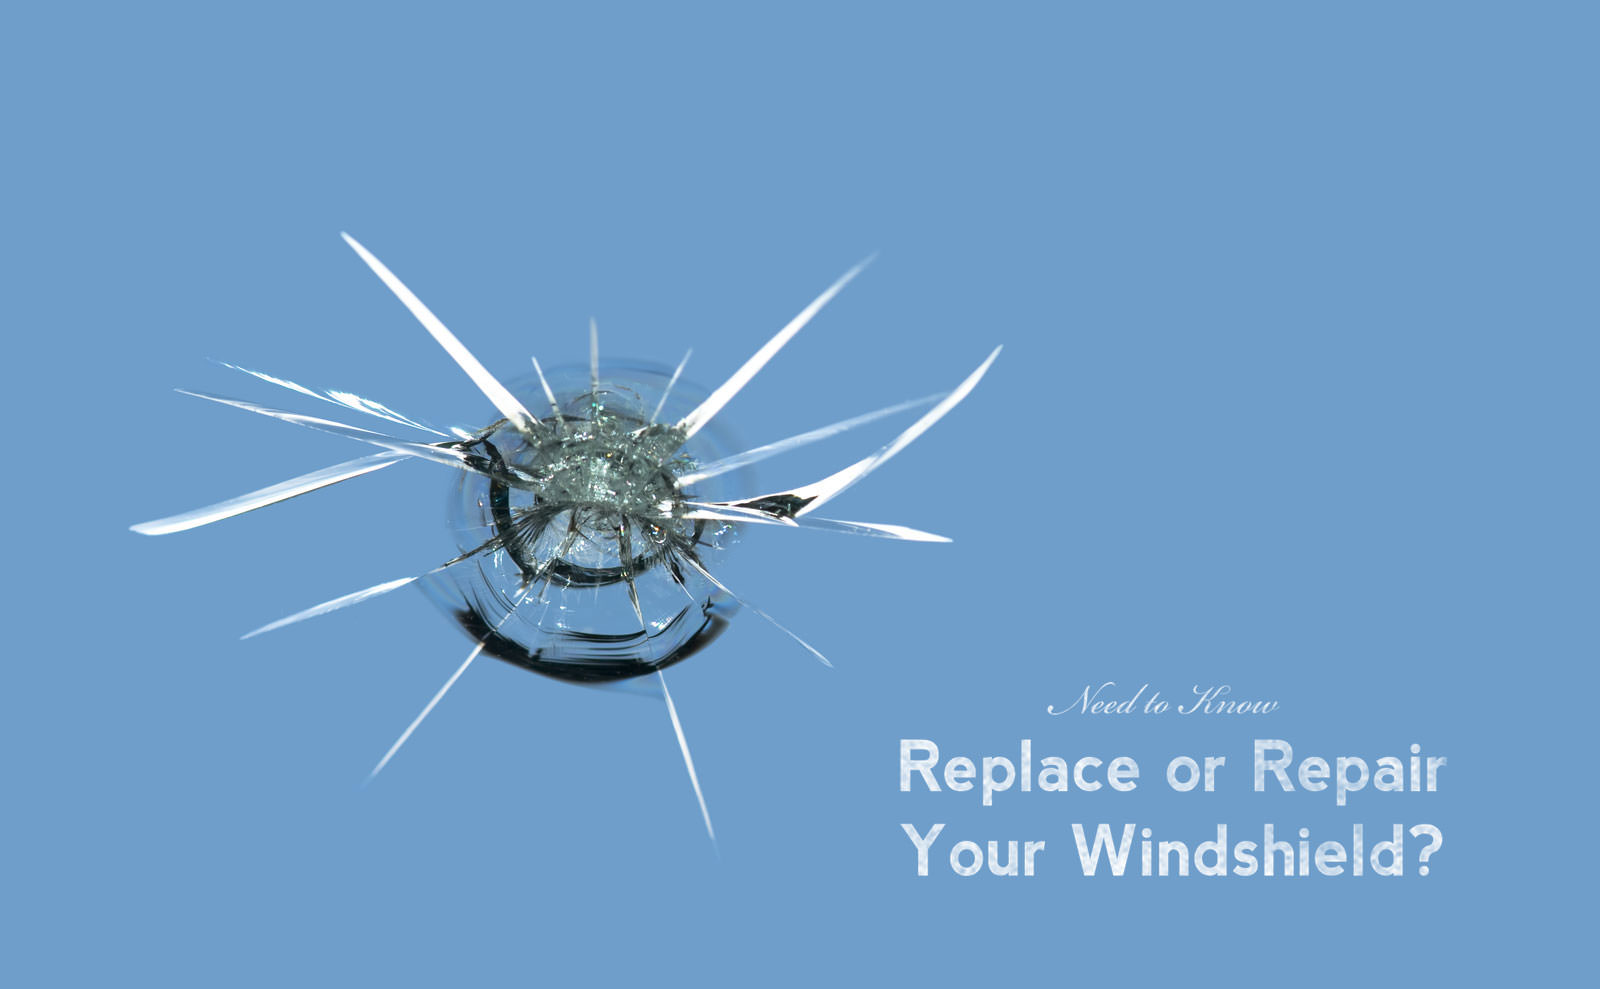 Replace or Repair Your Windshield?